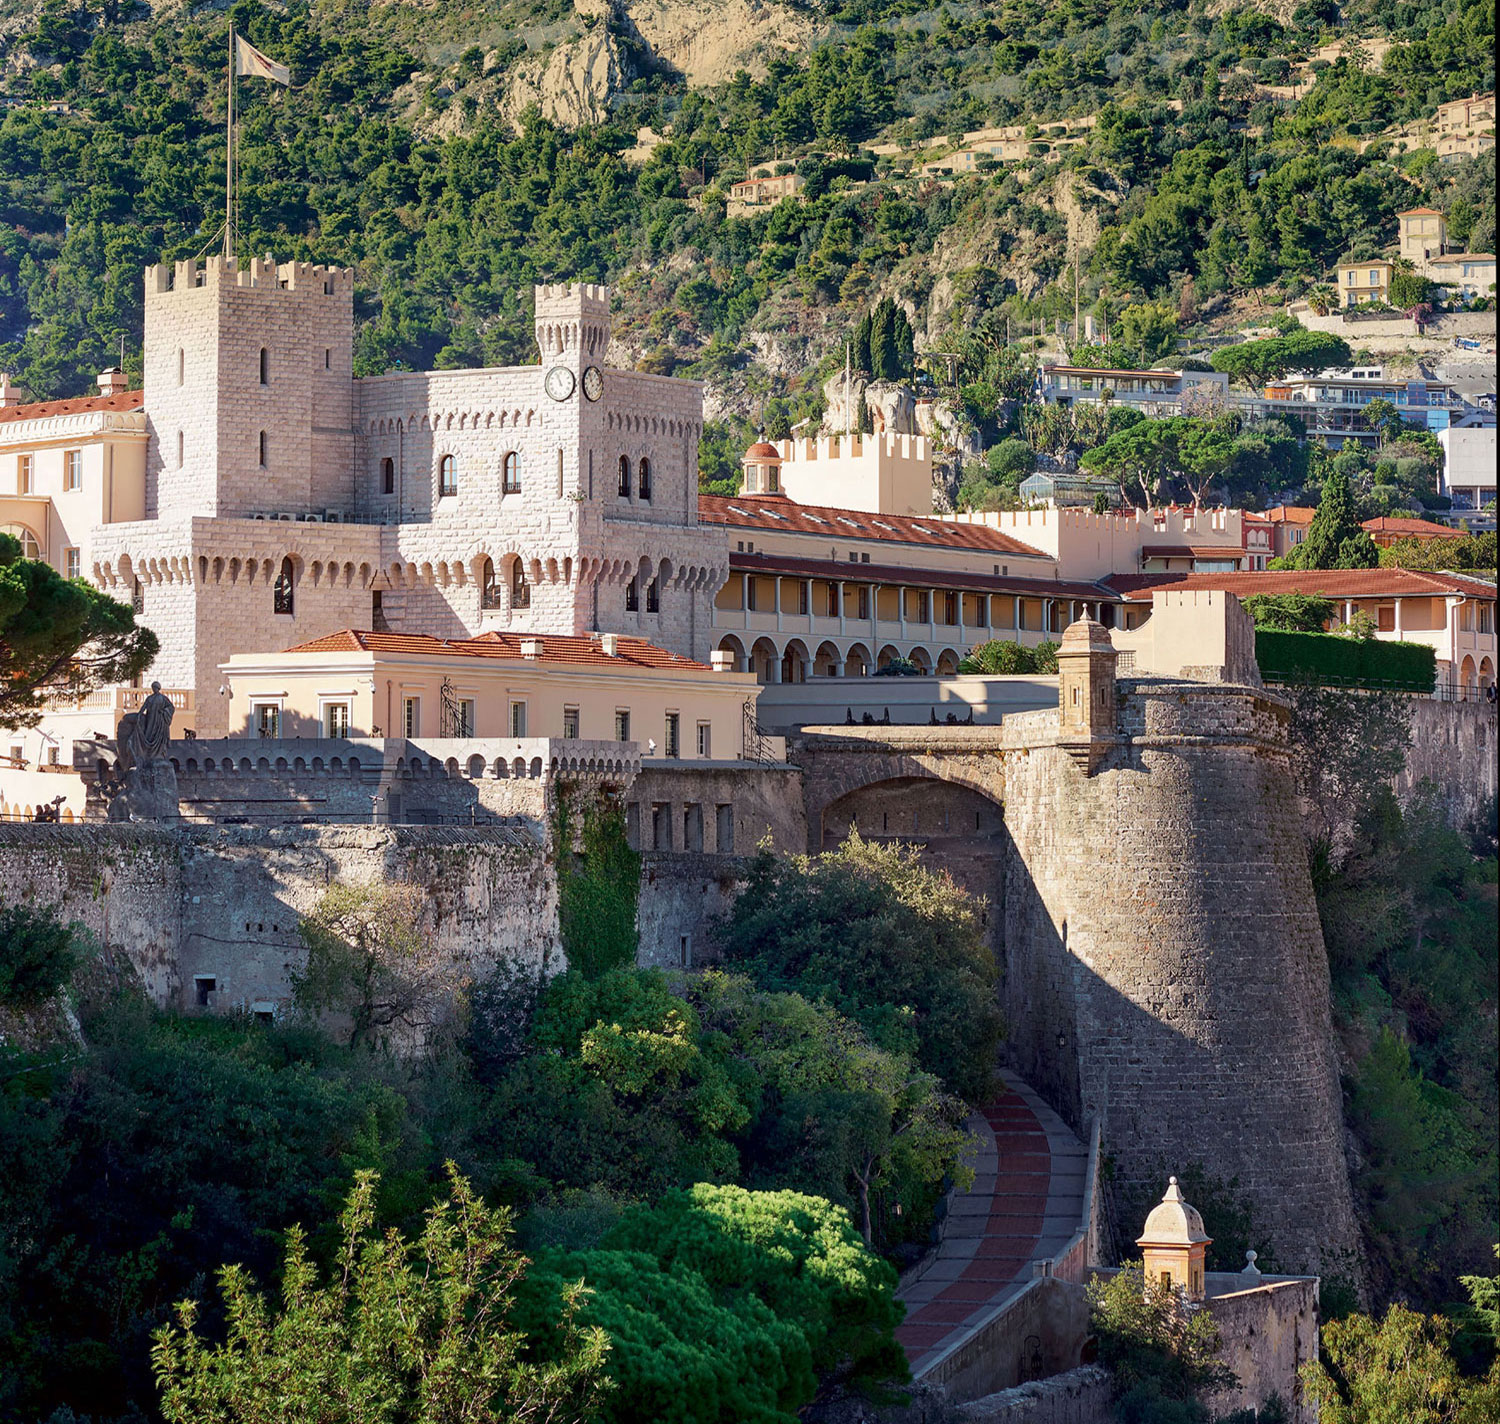 Villa San Martin is located in the very heart of the Old Town, next to the Prince's Palace, no less—making it one of the most secure spots in the already incredibly safe principality.